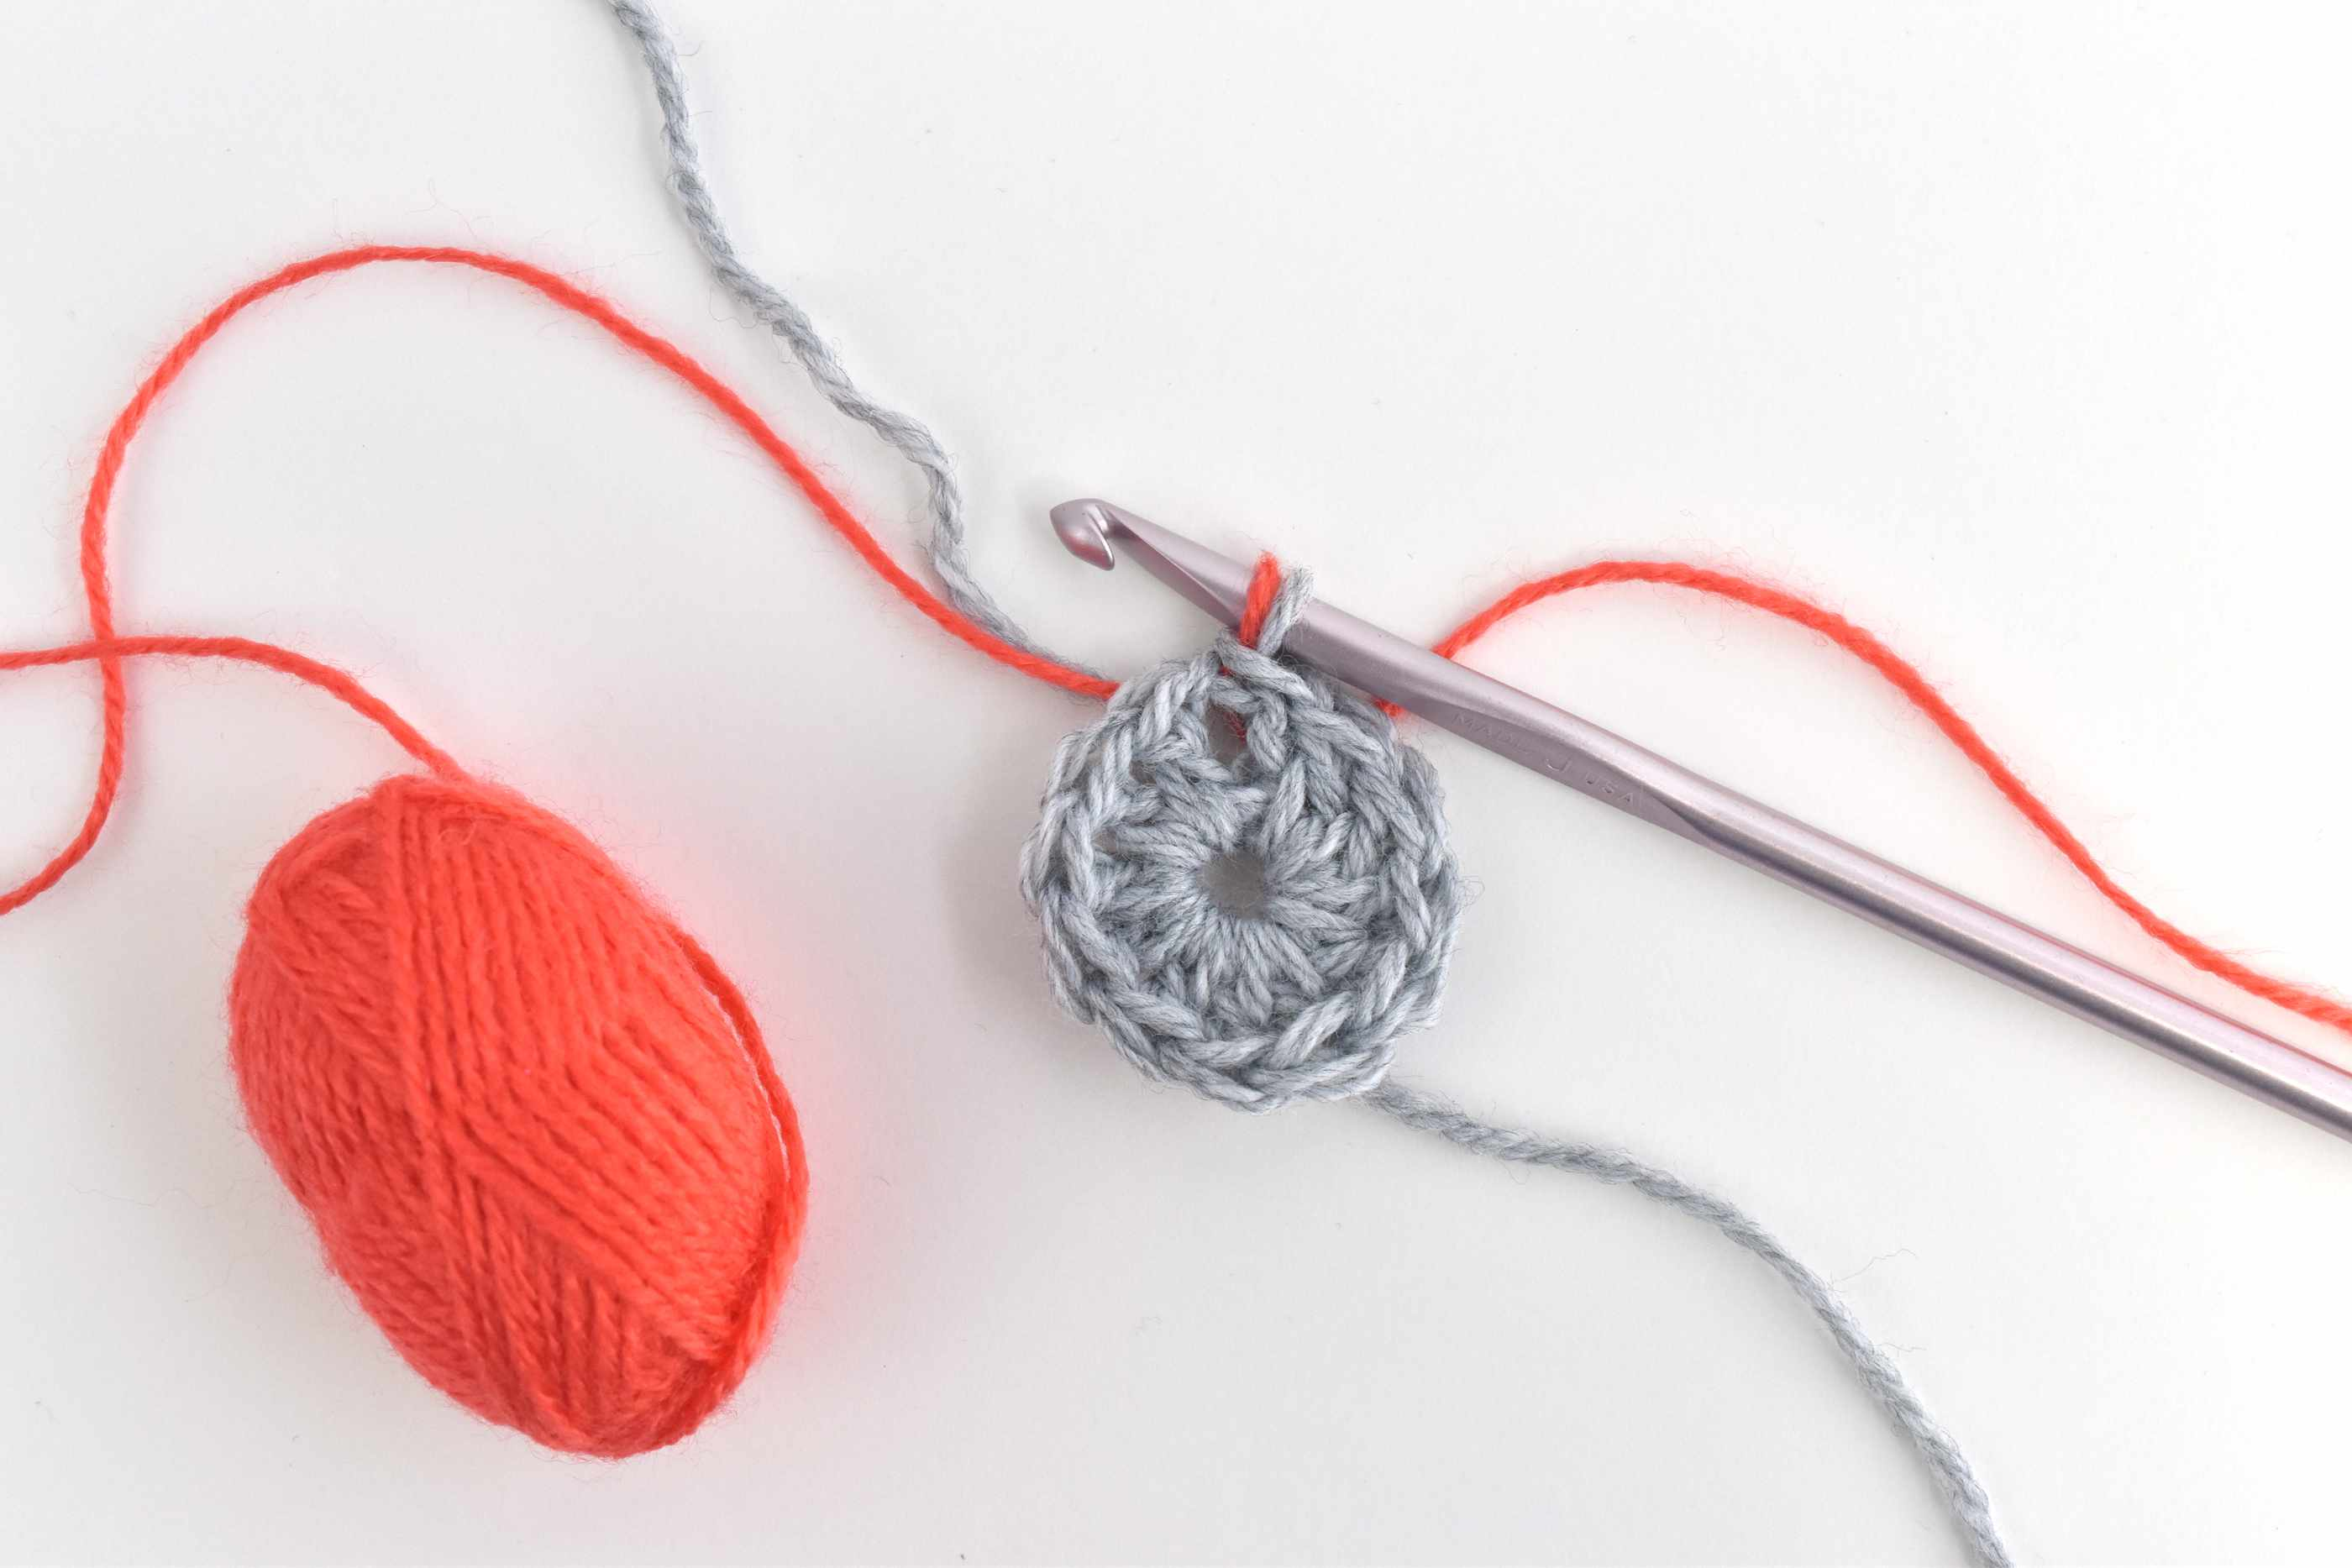 Crochet a Circle and Add in a Second Color Yarn